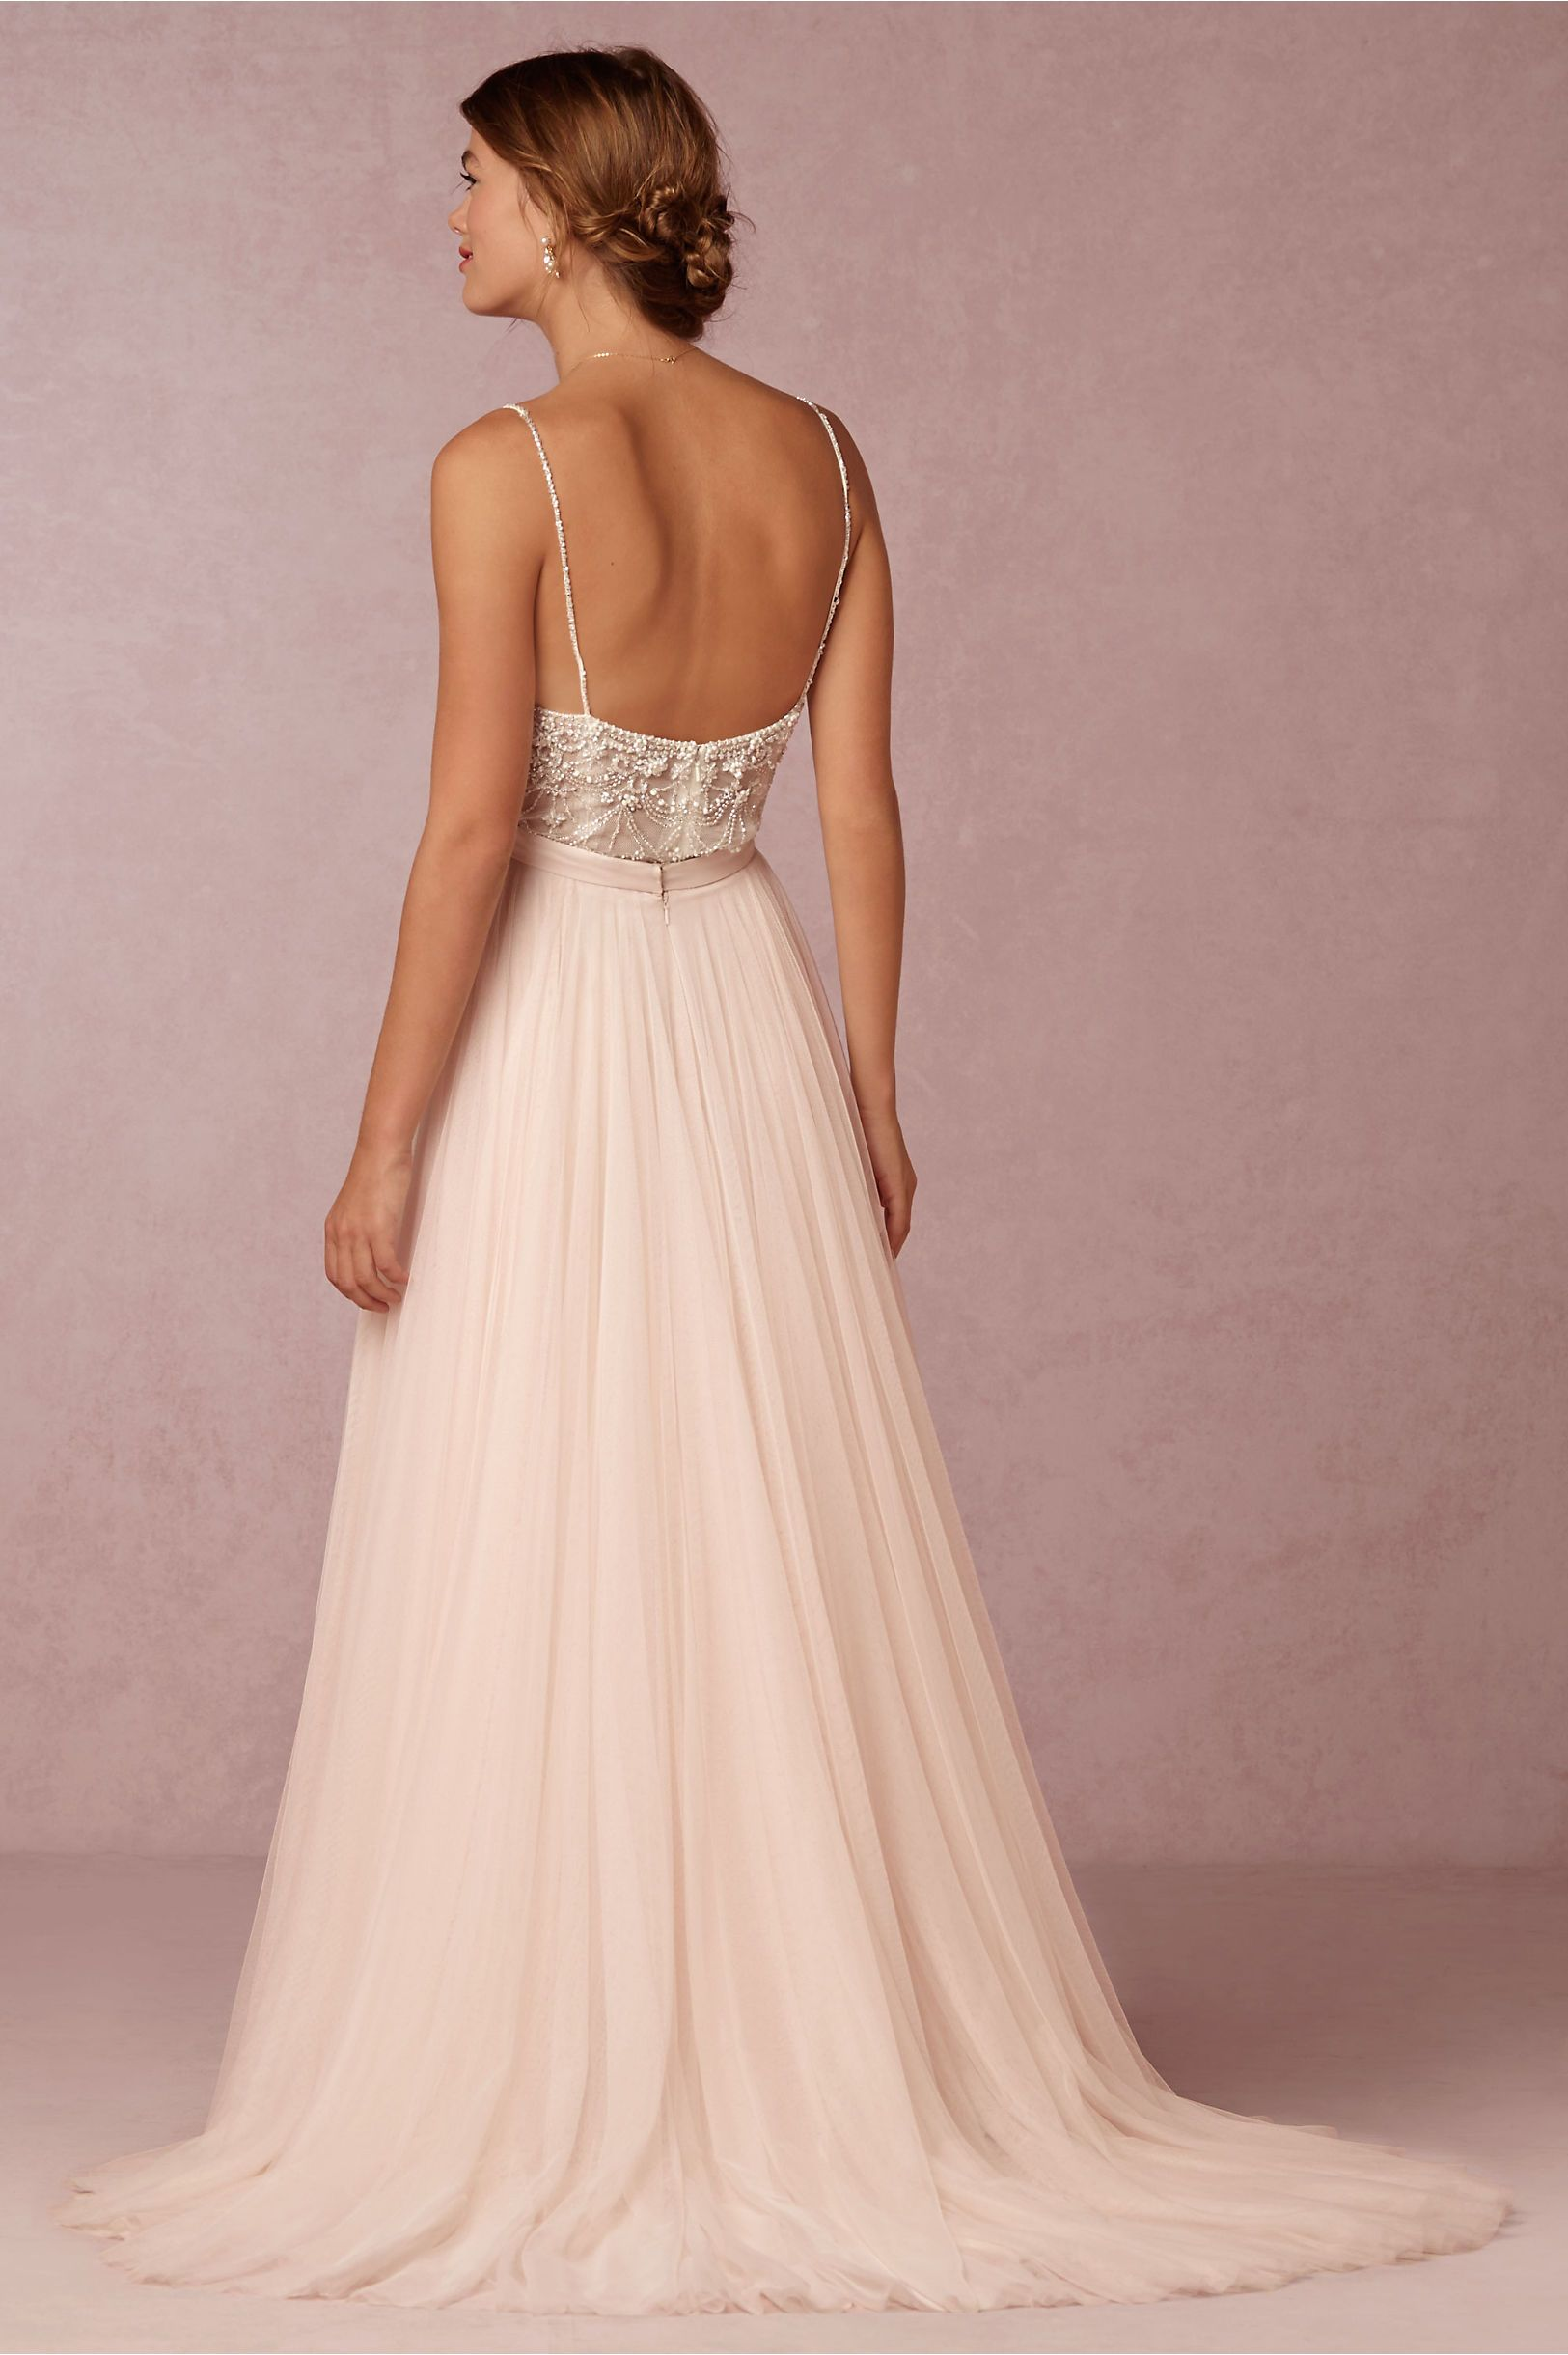 Beach wedding mother of the bride  Amora Skirt in Bride at BHLDN  Wedding ideas  Pinterest  Bodysuit